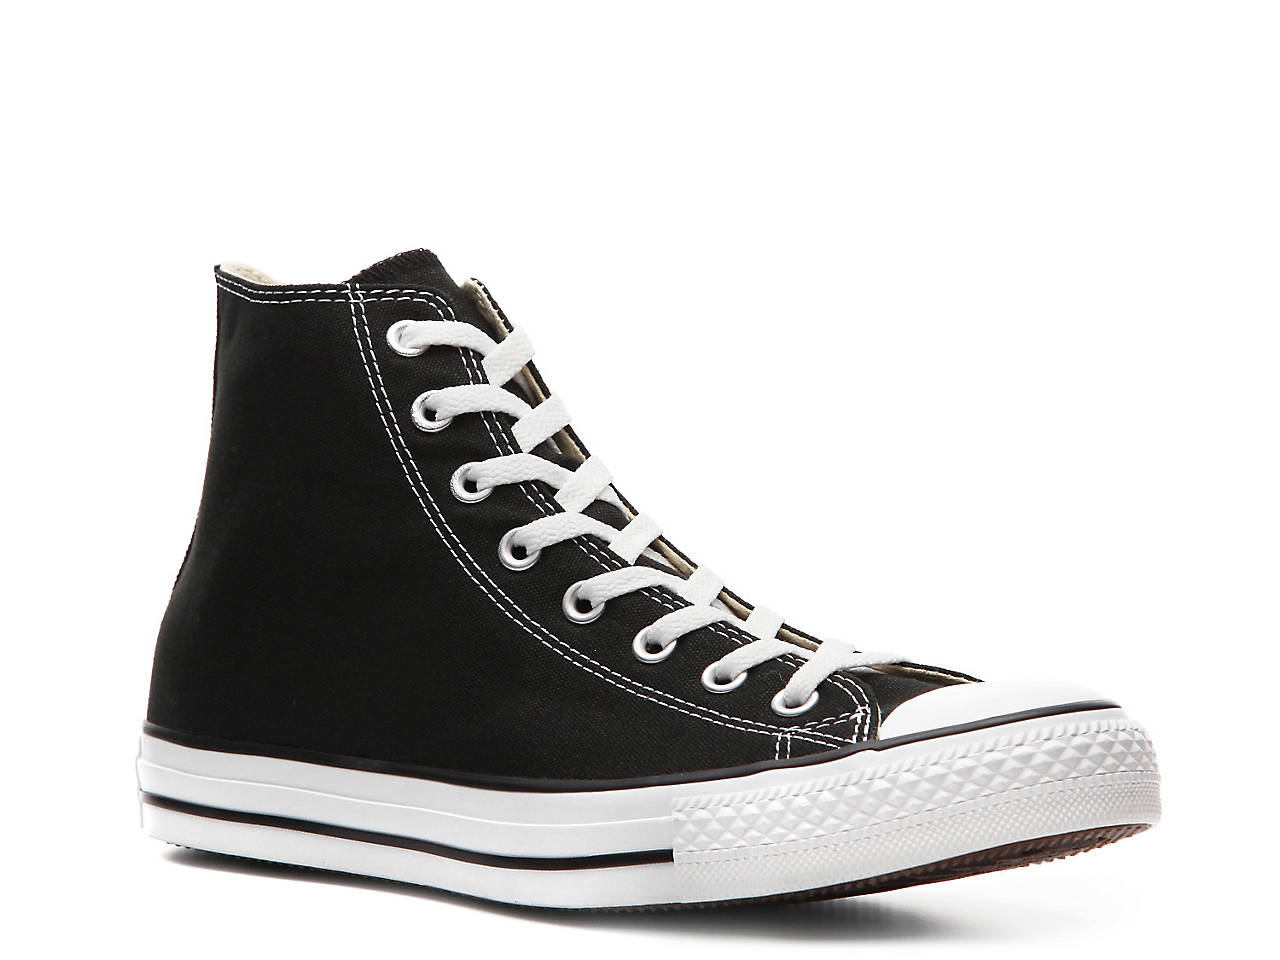 Converse Chuck Taylor All Star High-Top Sneaker - Men s Men s Shoes ... 9117b5048